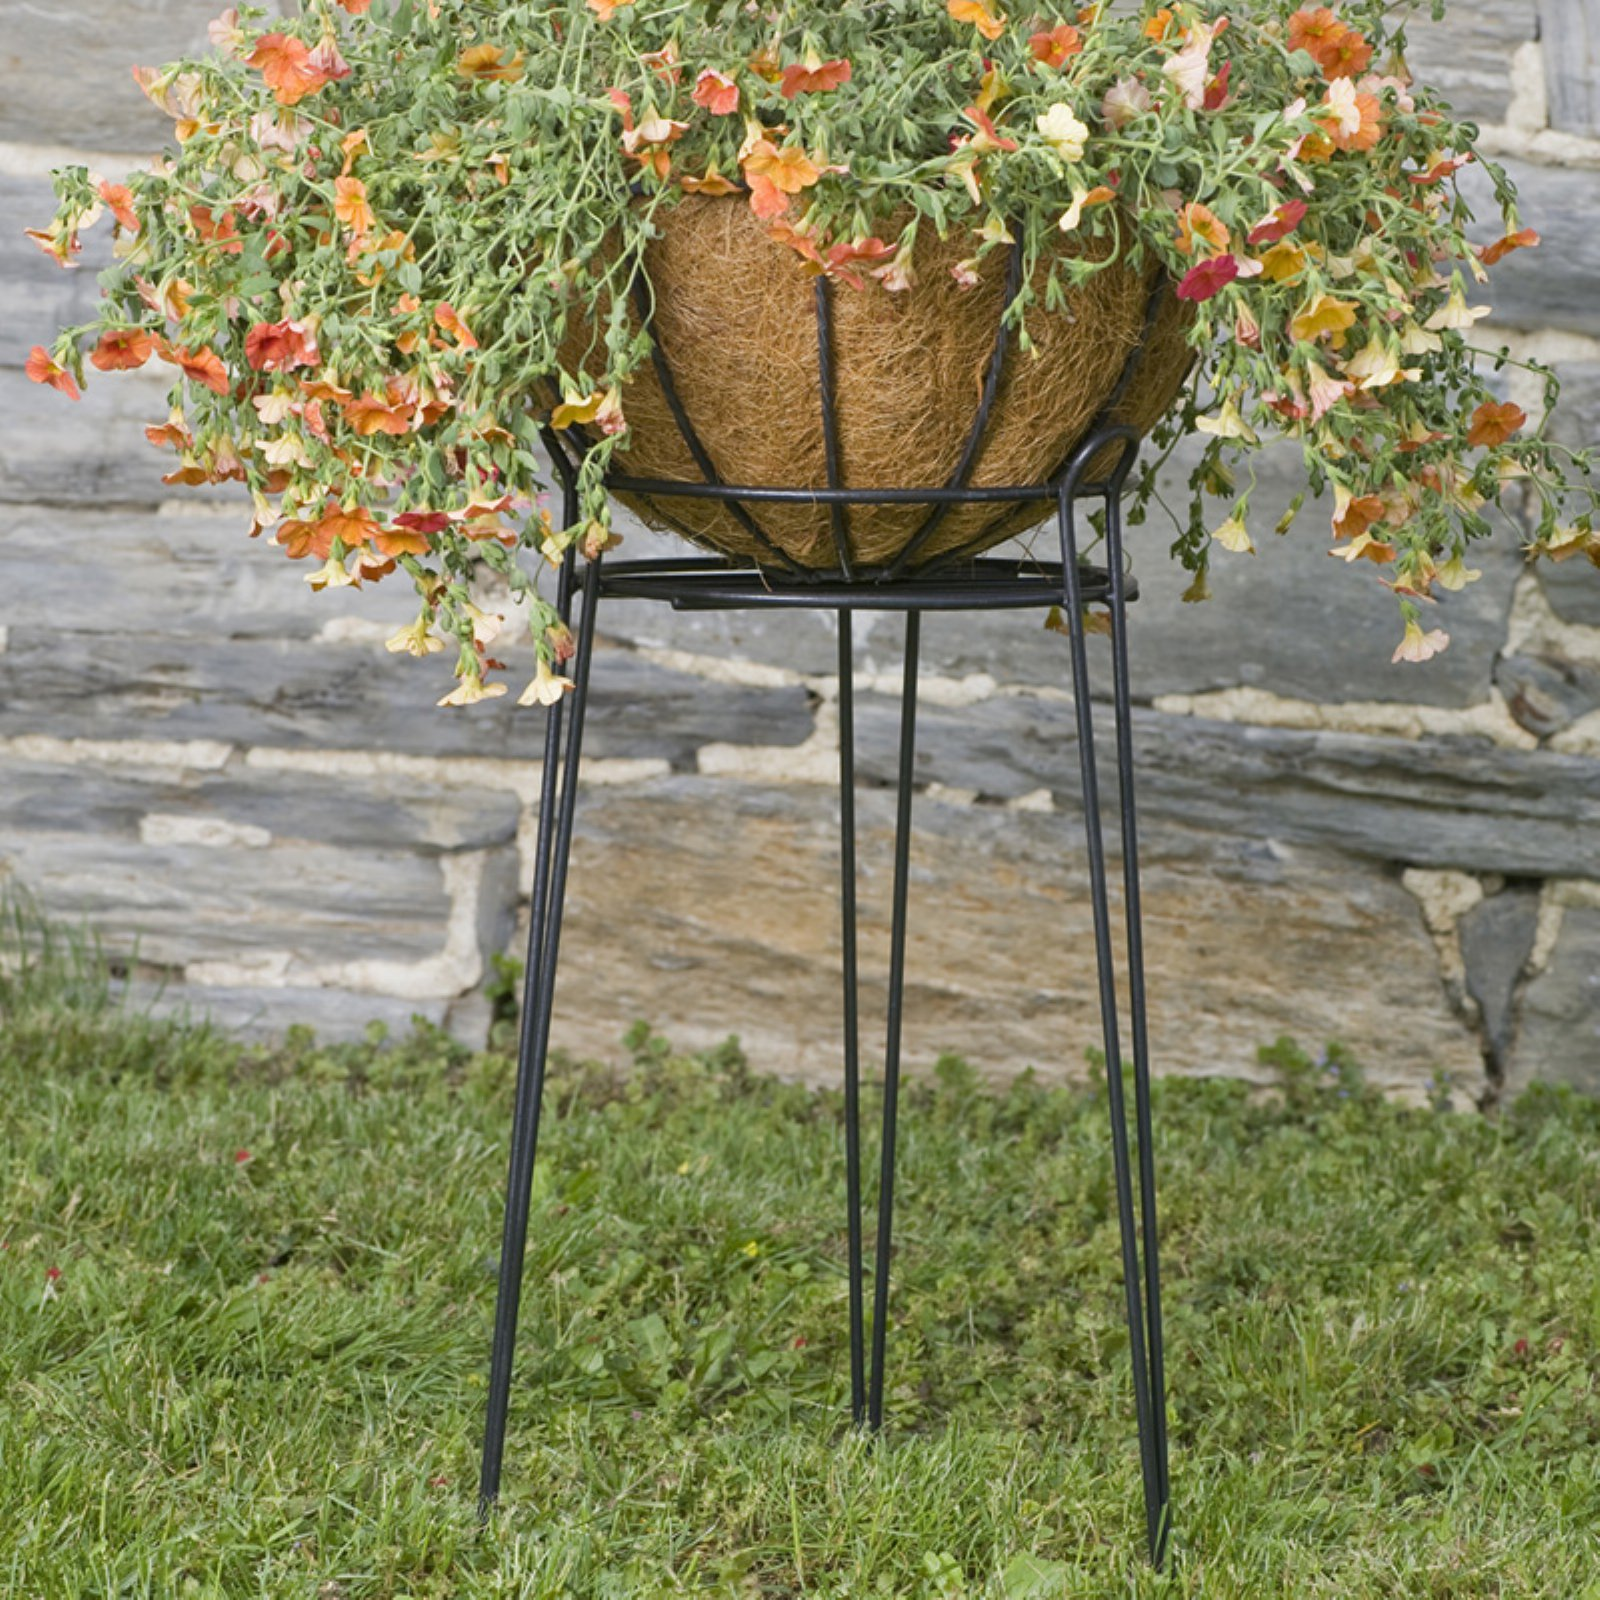 CobraCo 21 in. Basic Plant Stand